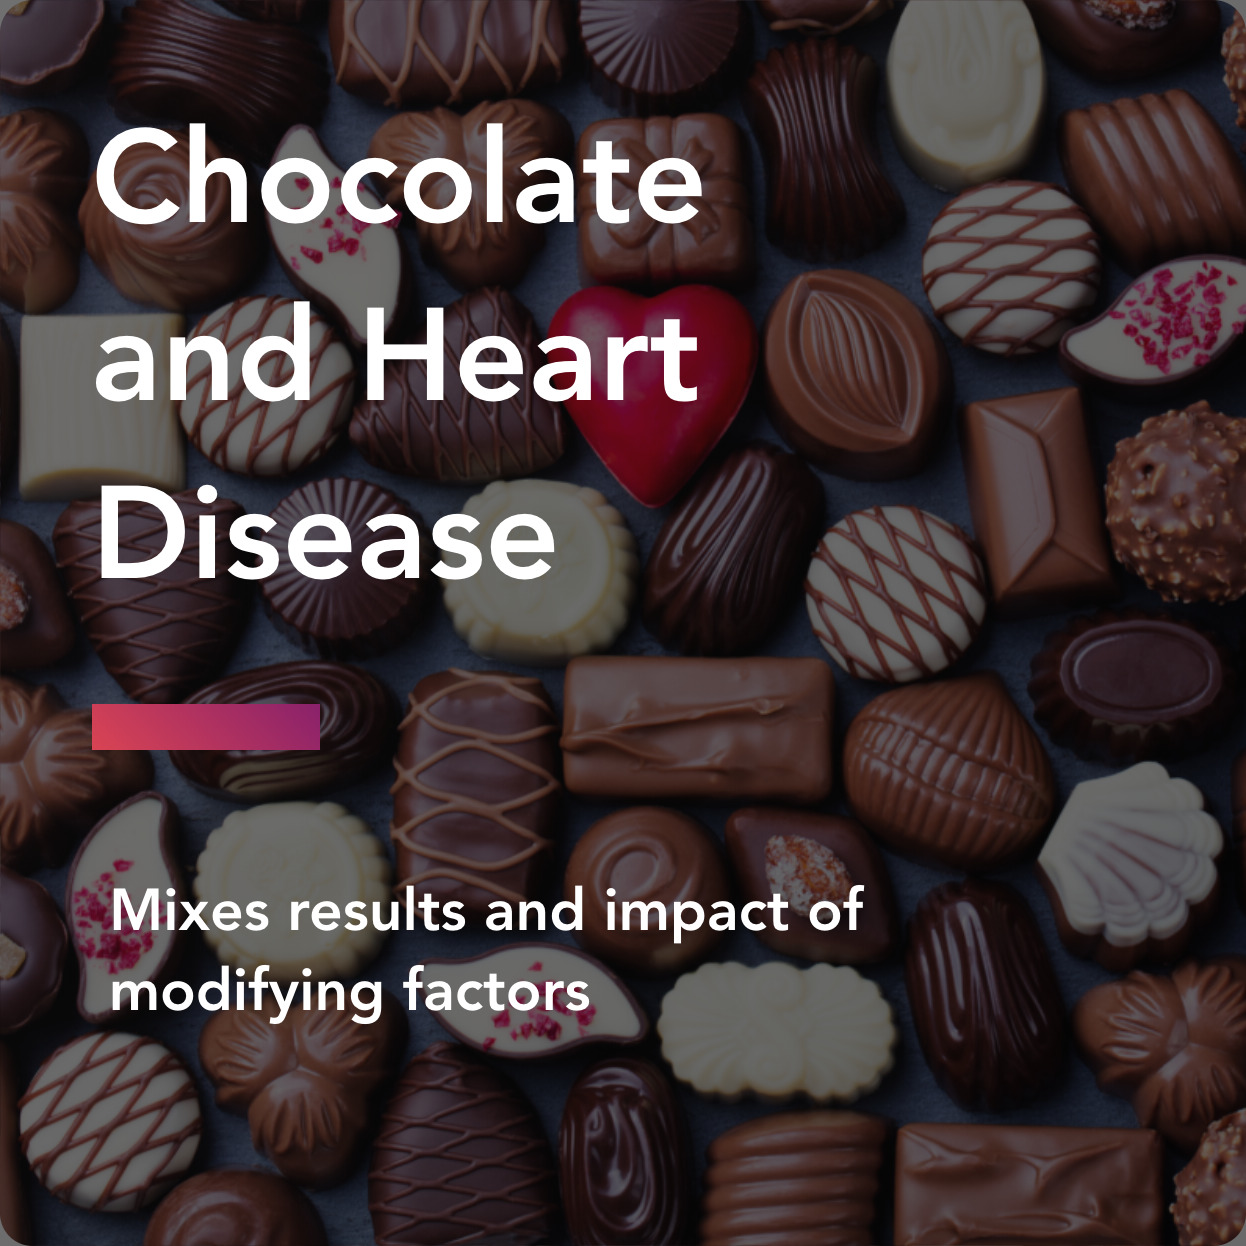 chocolate and heart disease title